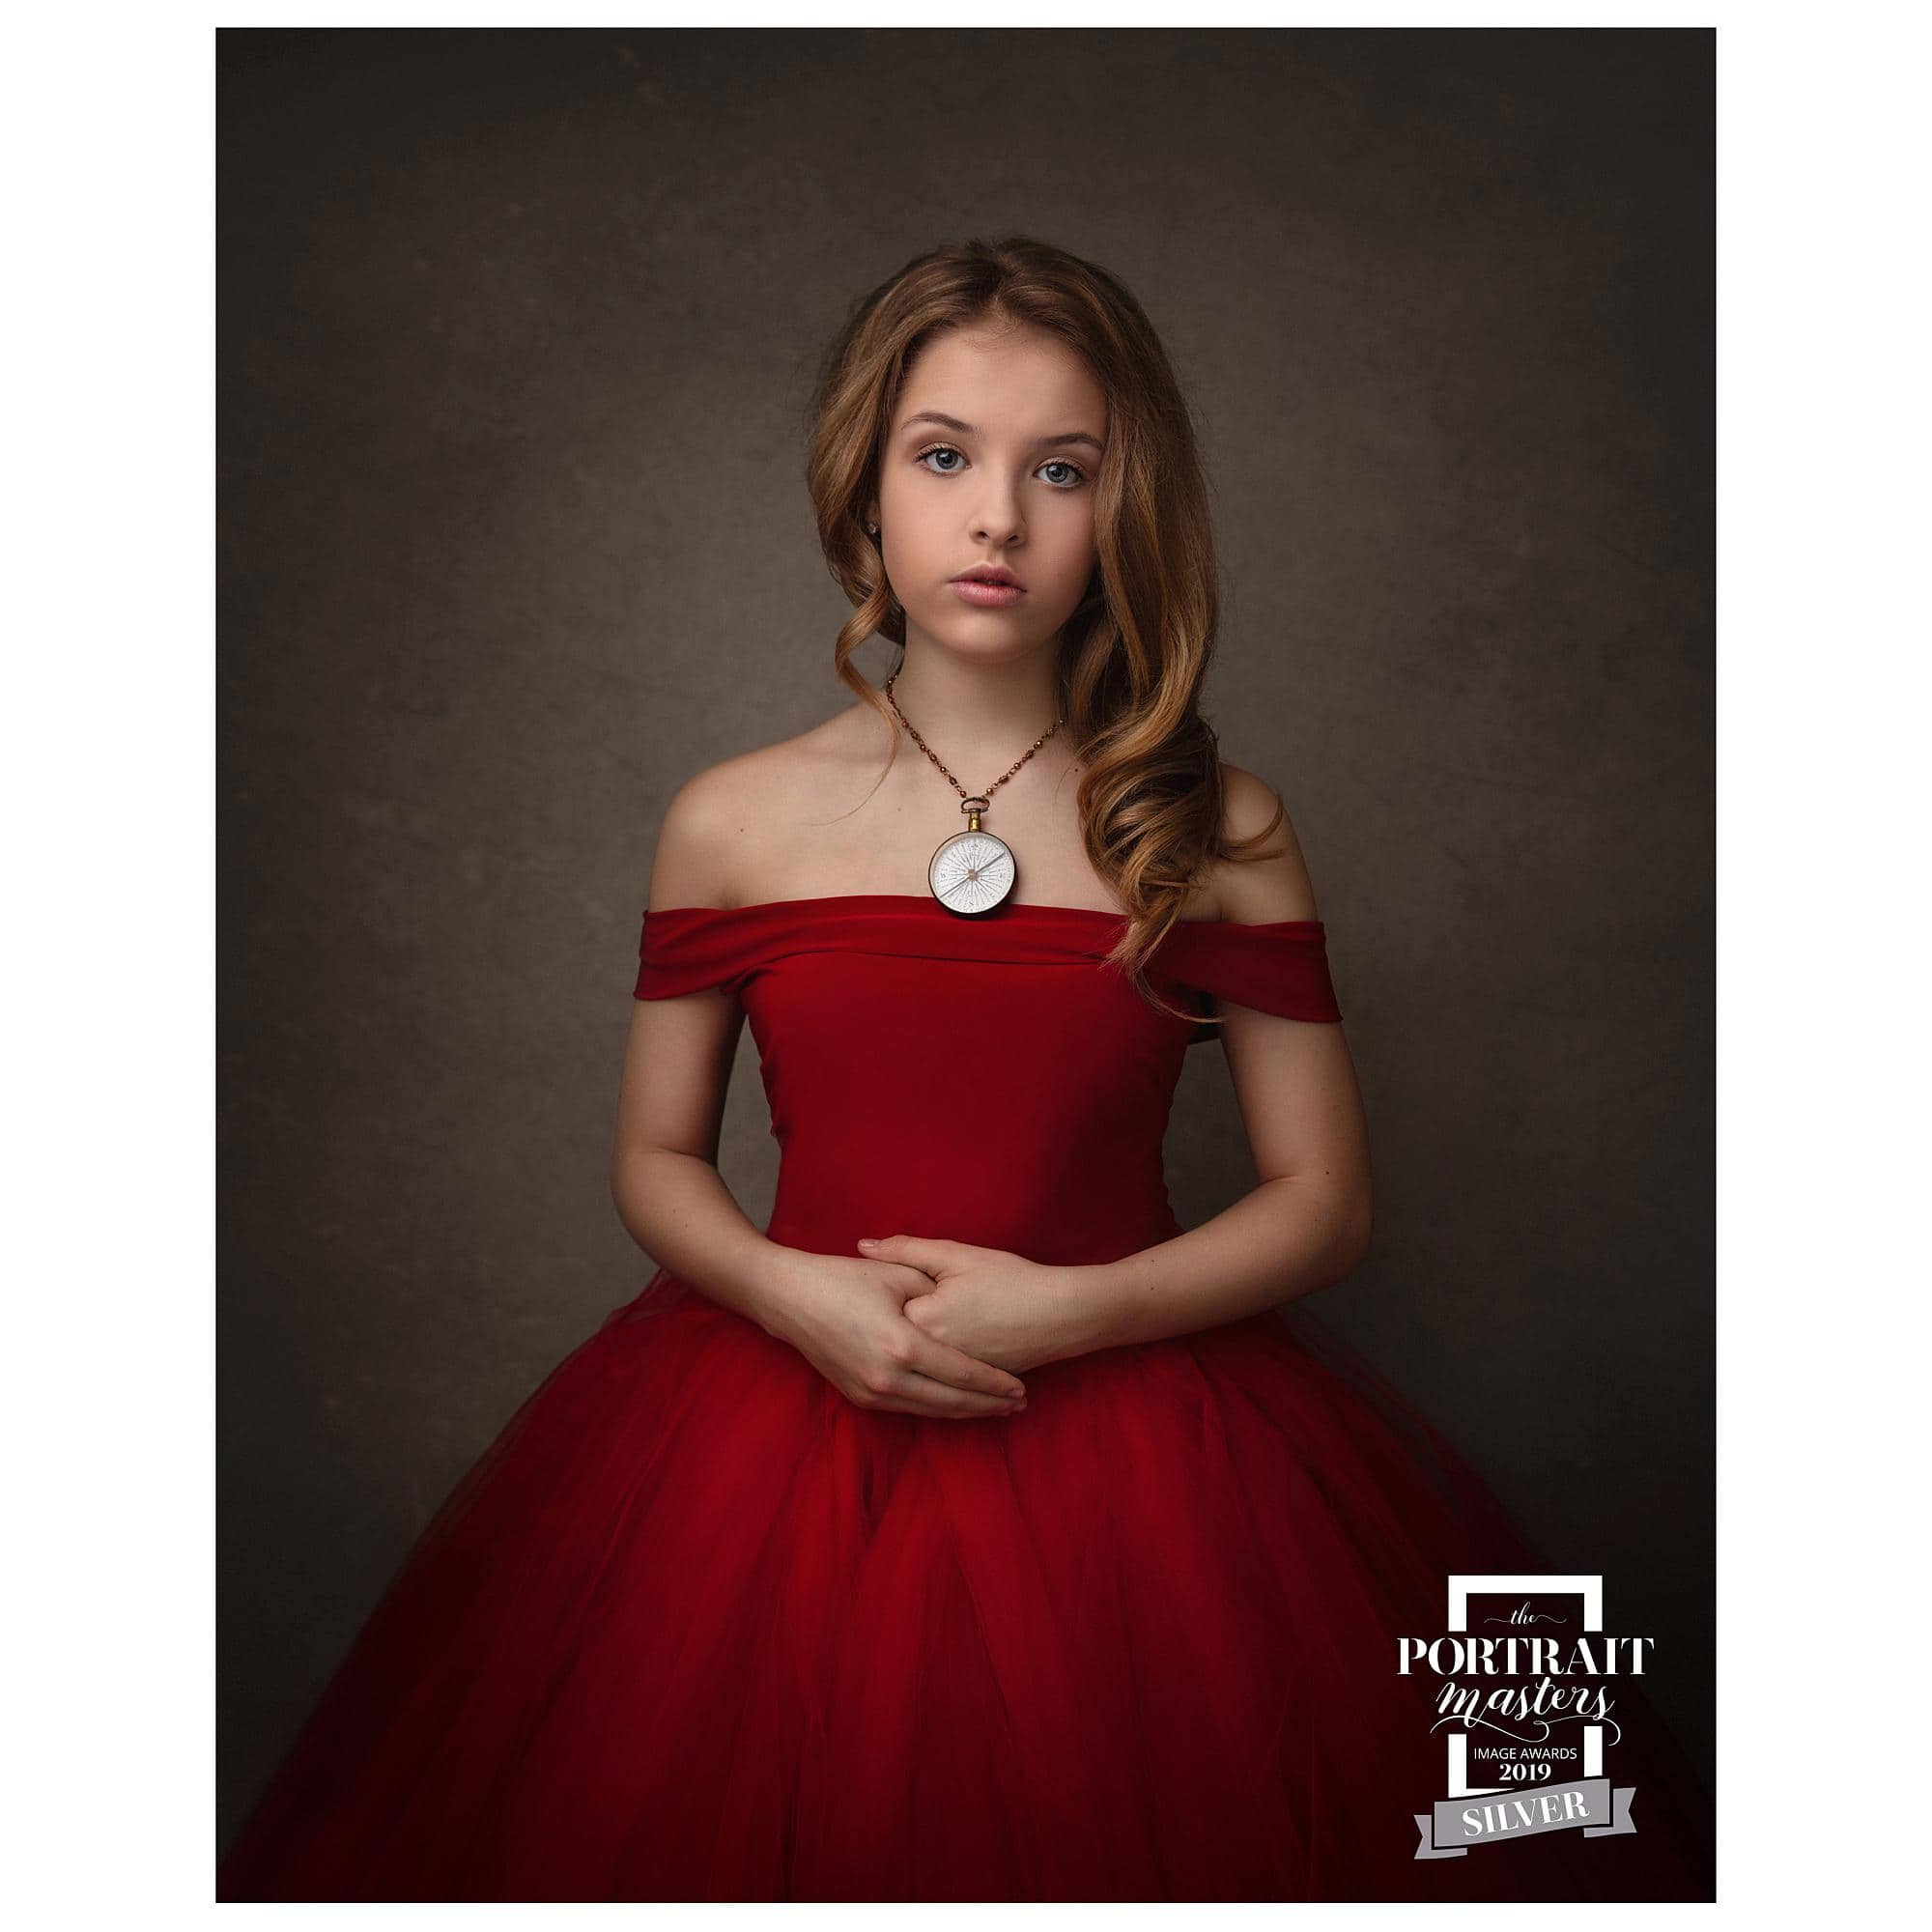 Portrait of a Girl in a red dress holding a red rose wins a silver award at the Portrait Masters